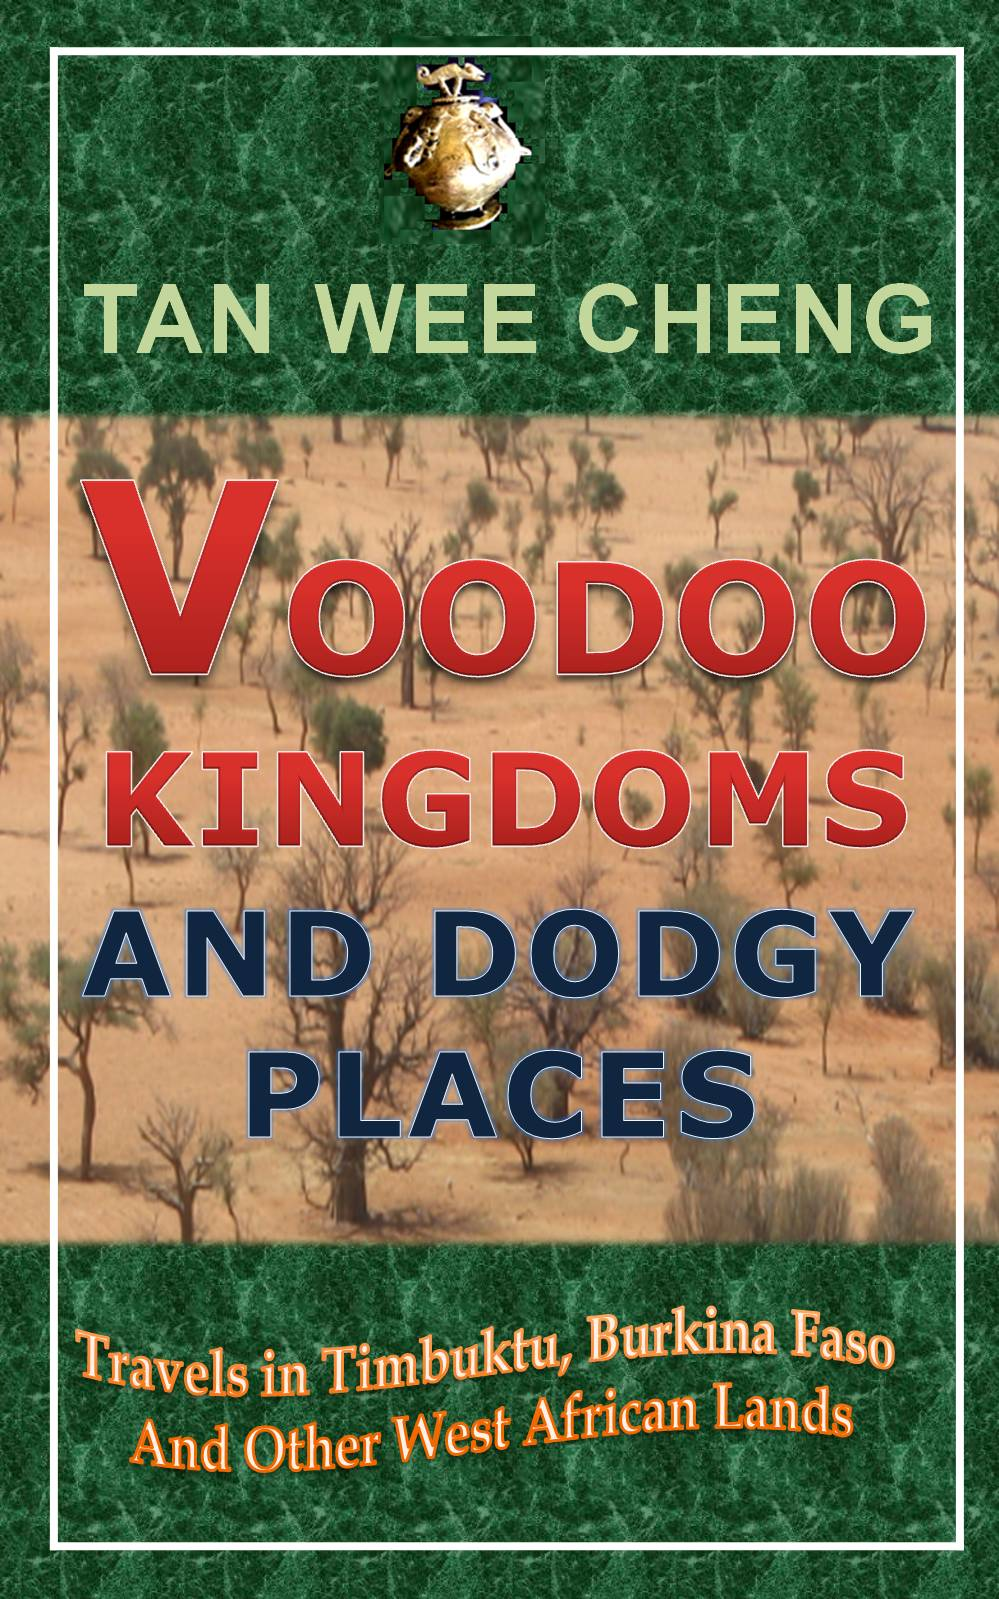 Voodoo Lands & Dodgy Places cover